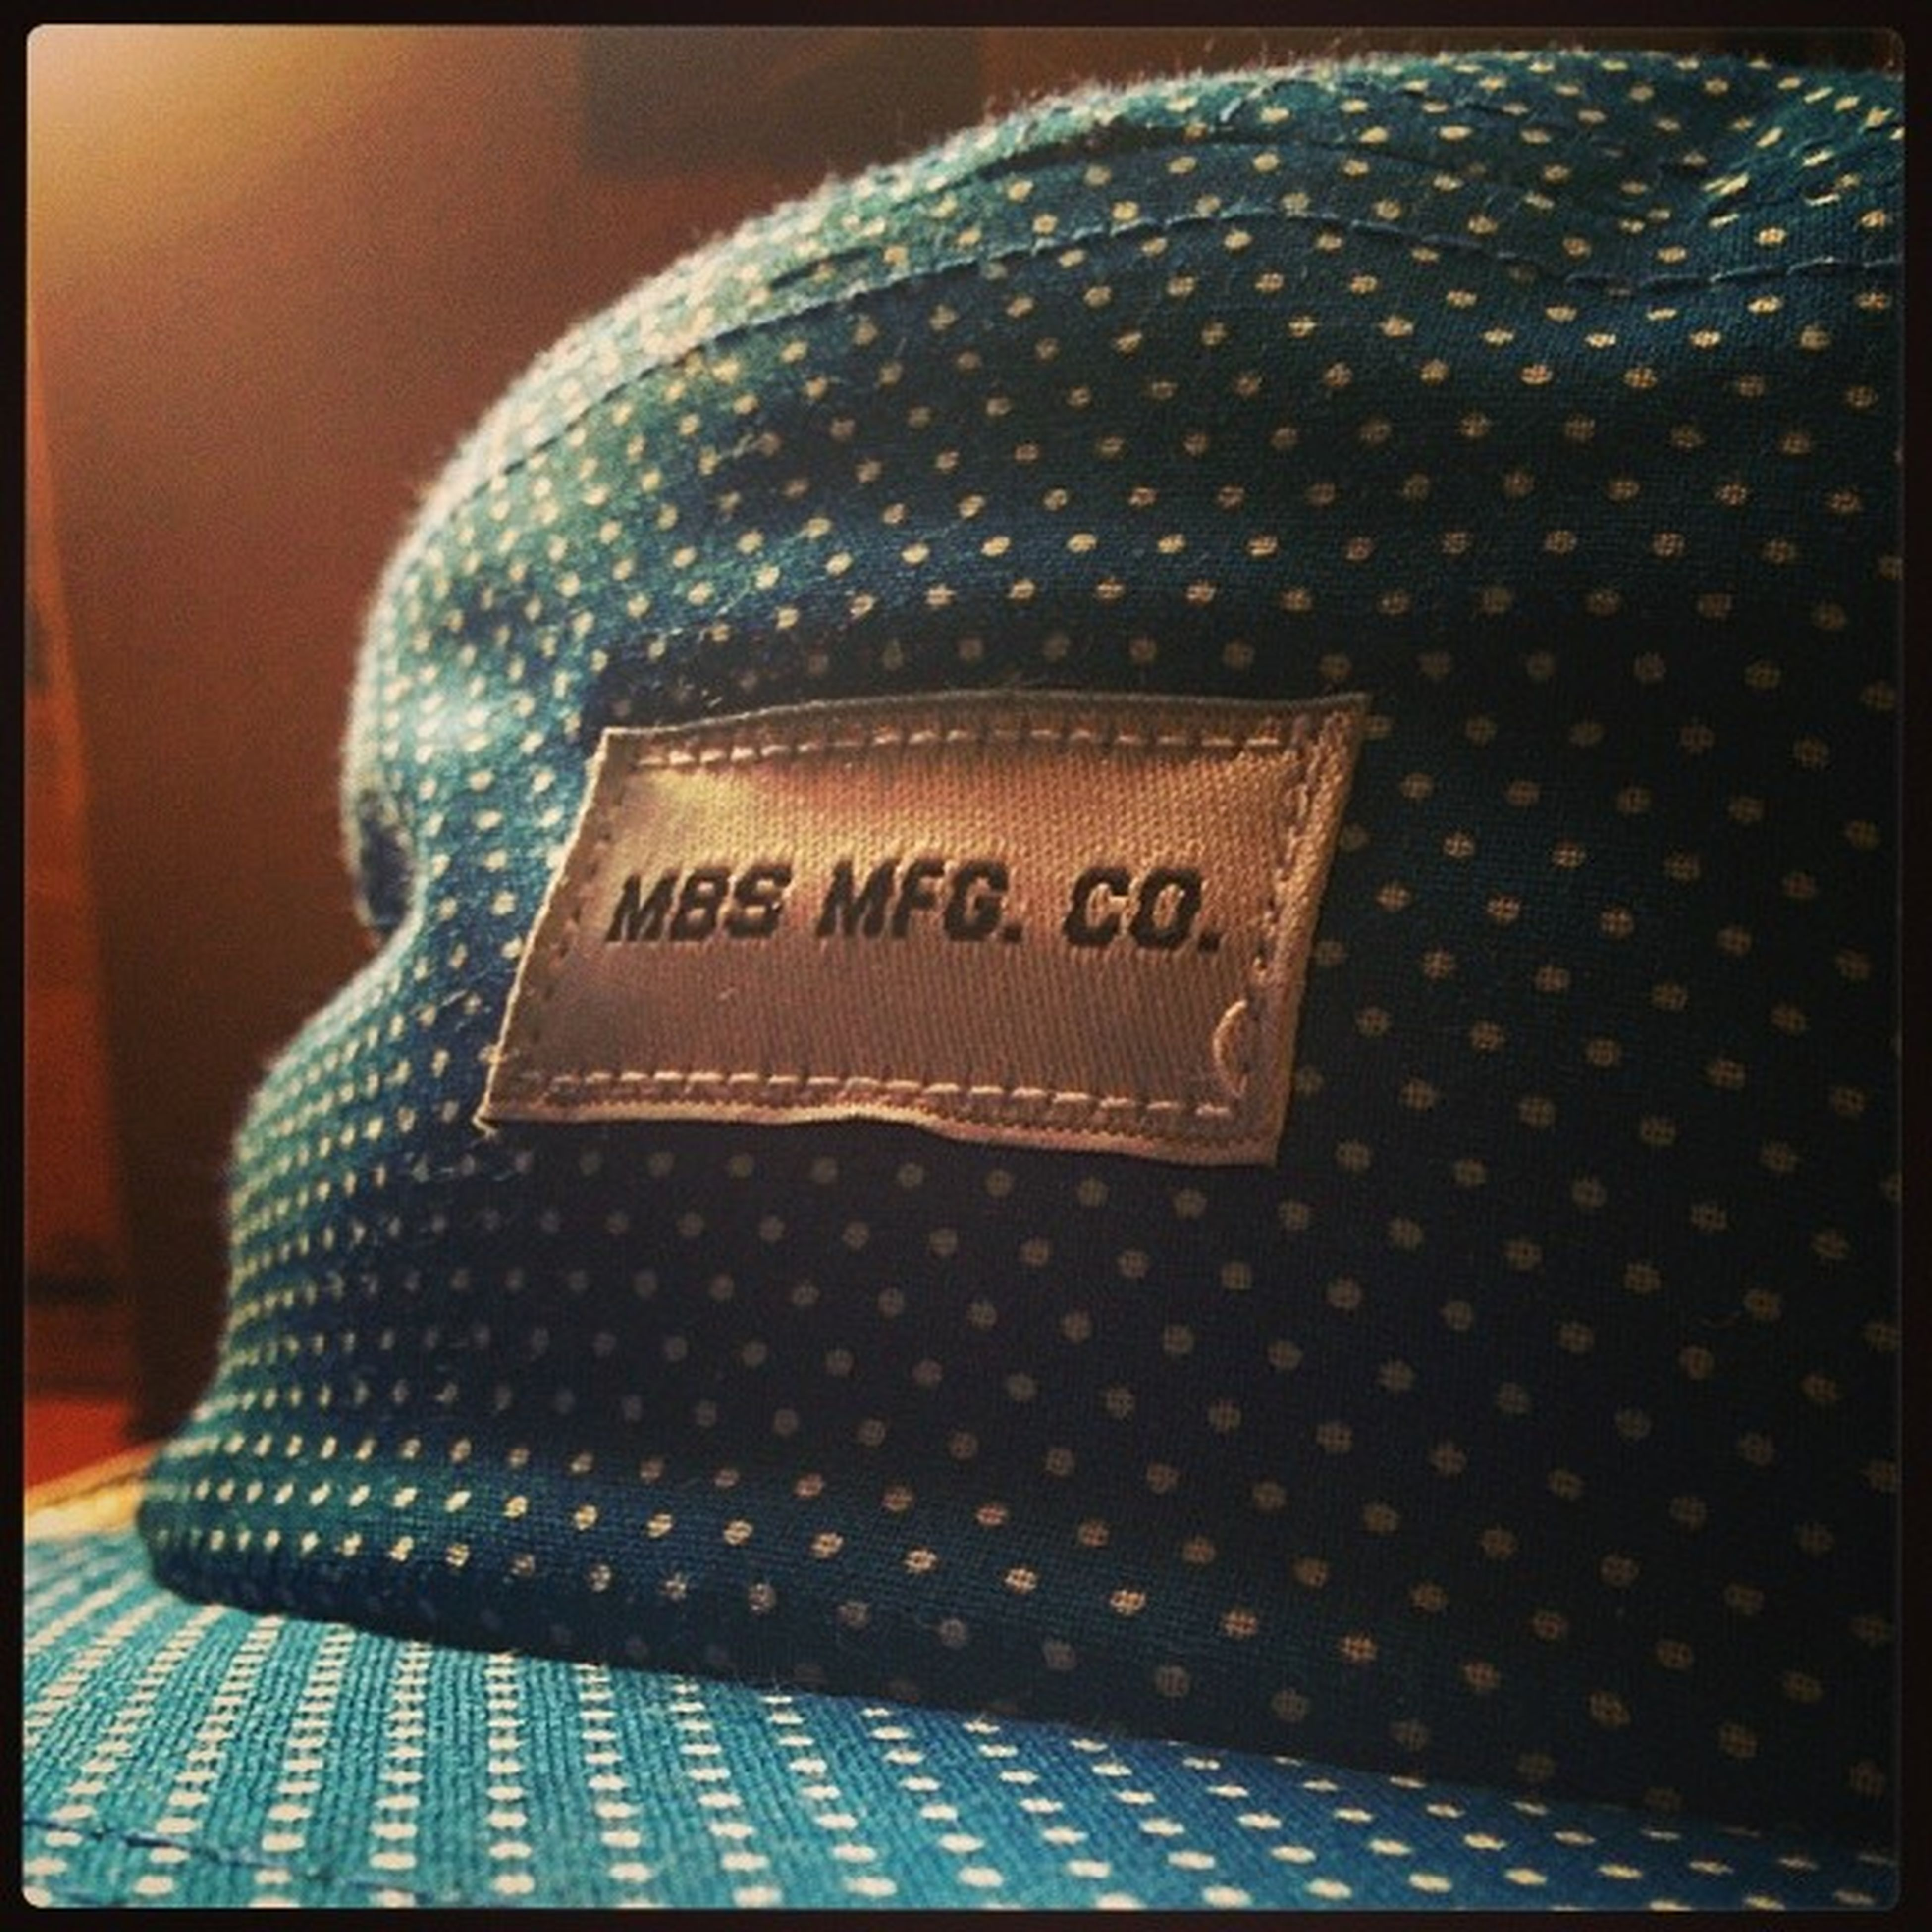 Copped a new 5-panel cap ? Mbscomfg 5panel Camphat DOPE